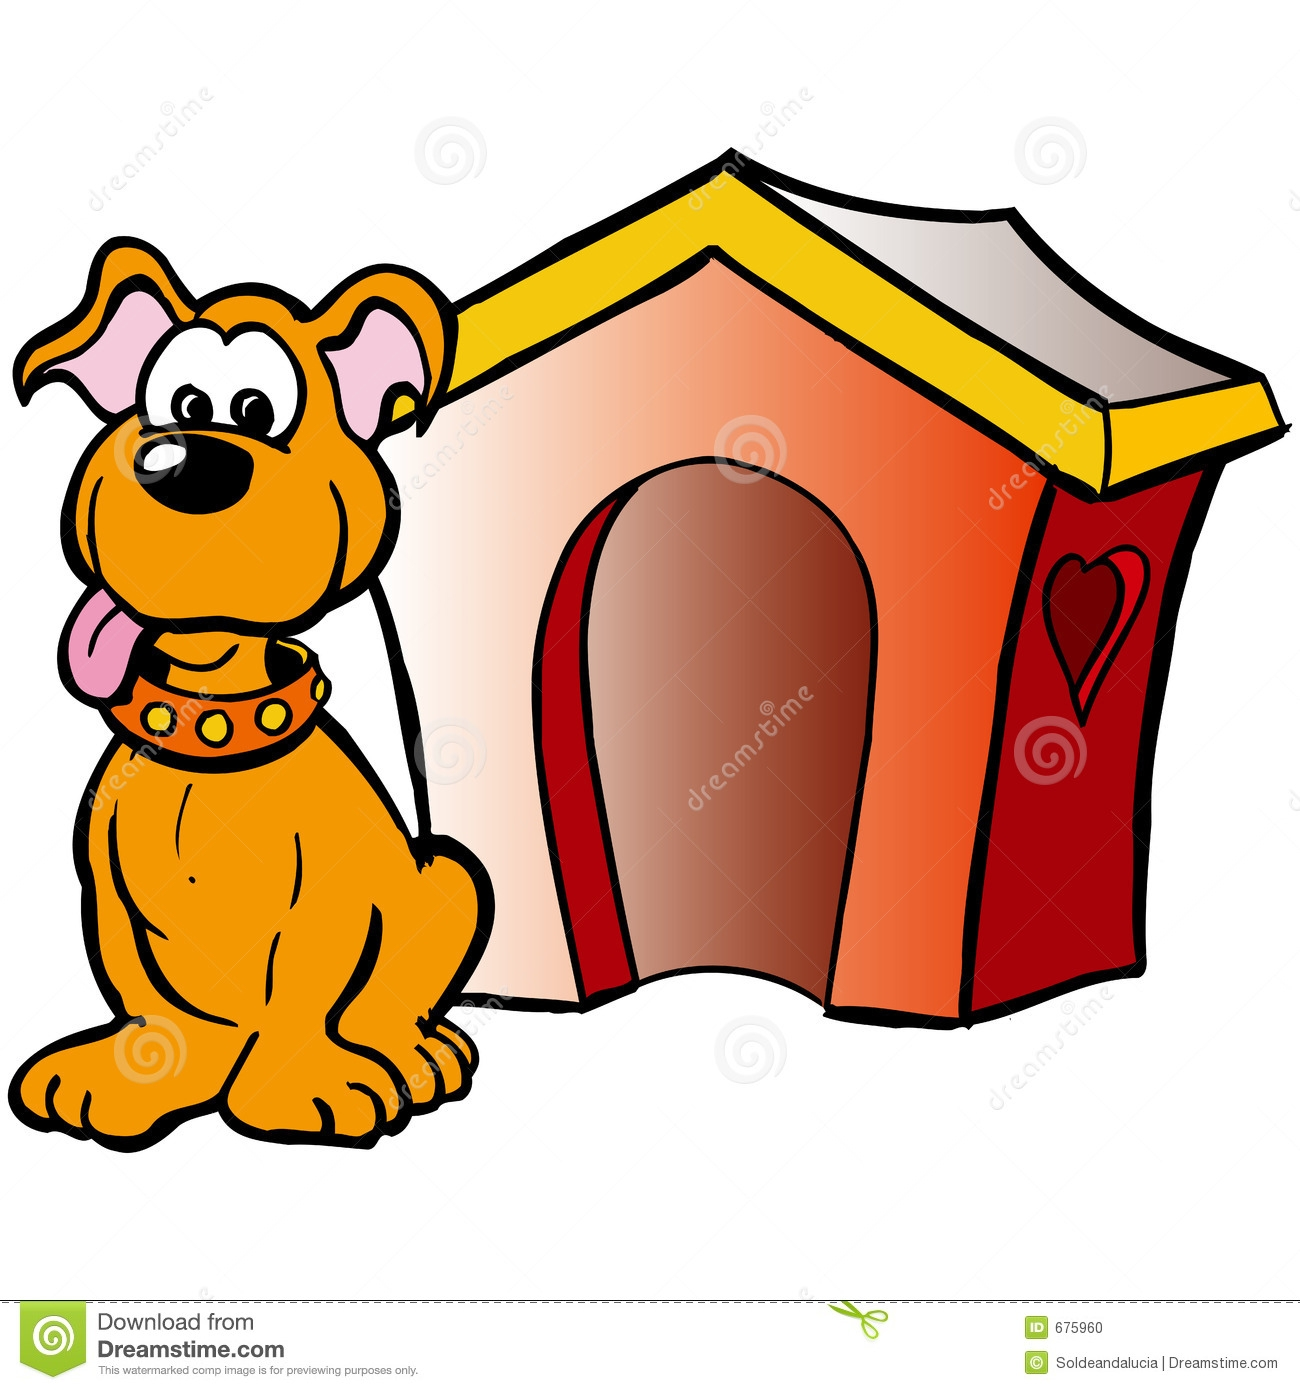 Doghouse clipart inside outside. Pictures free download best